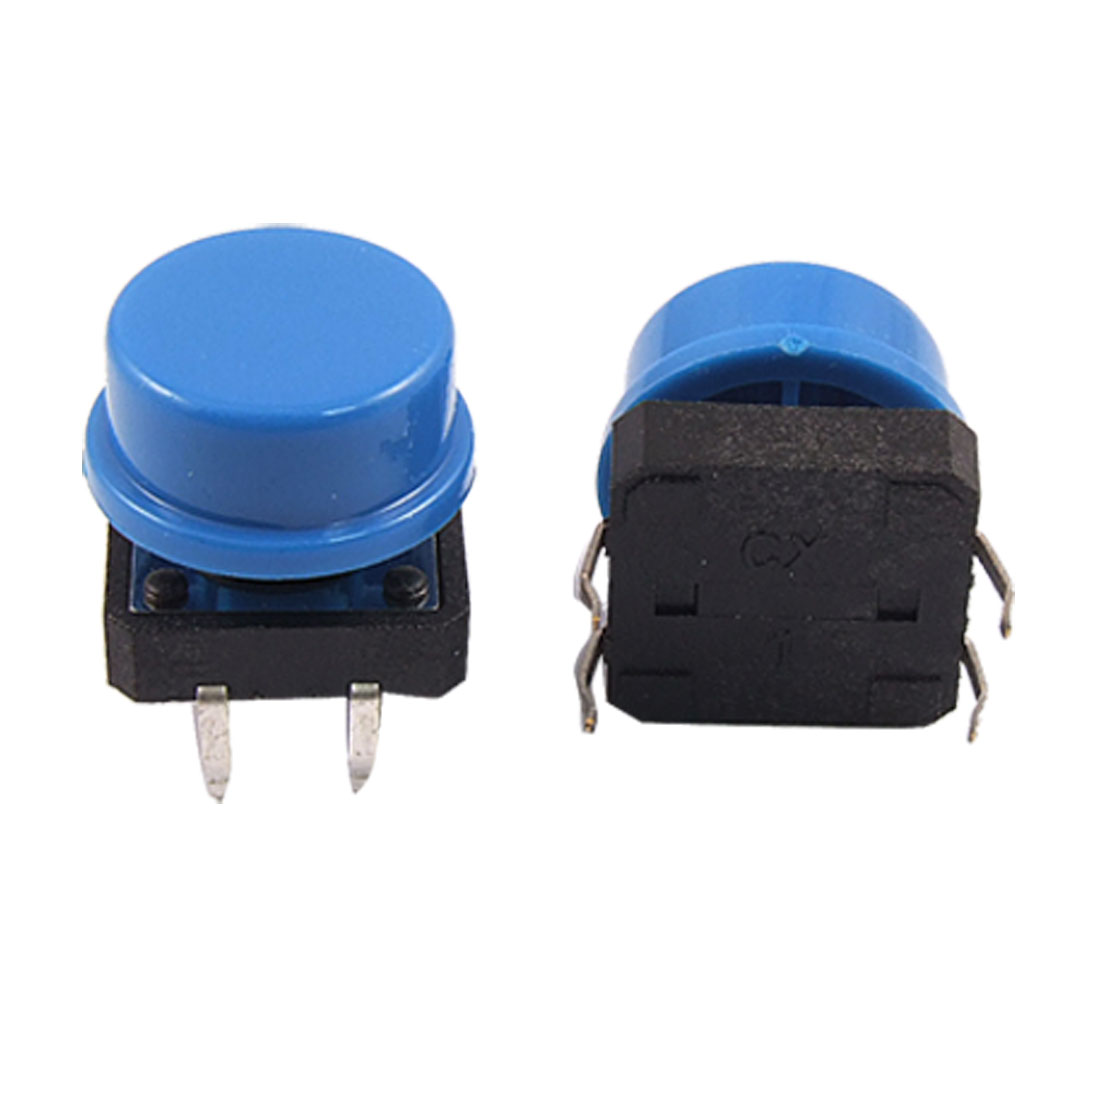 UXCELL 10 Pcs Pcb Momentary Tactile Push Button Switch 12 X 12Mm X 11Mm 4 Pin Dip W Cap contact  momentary